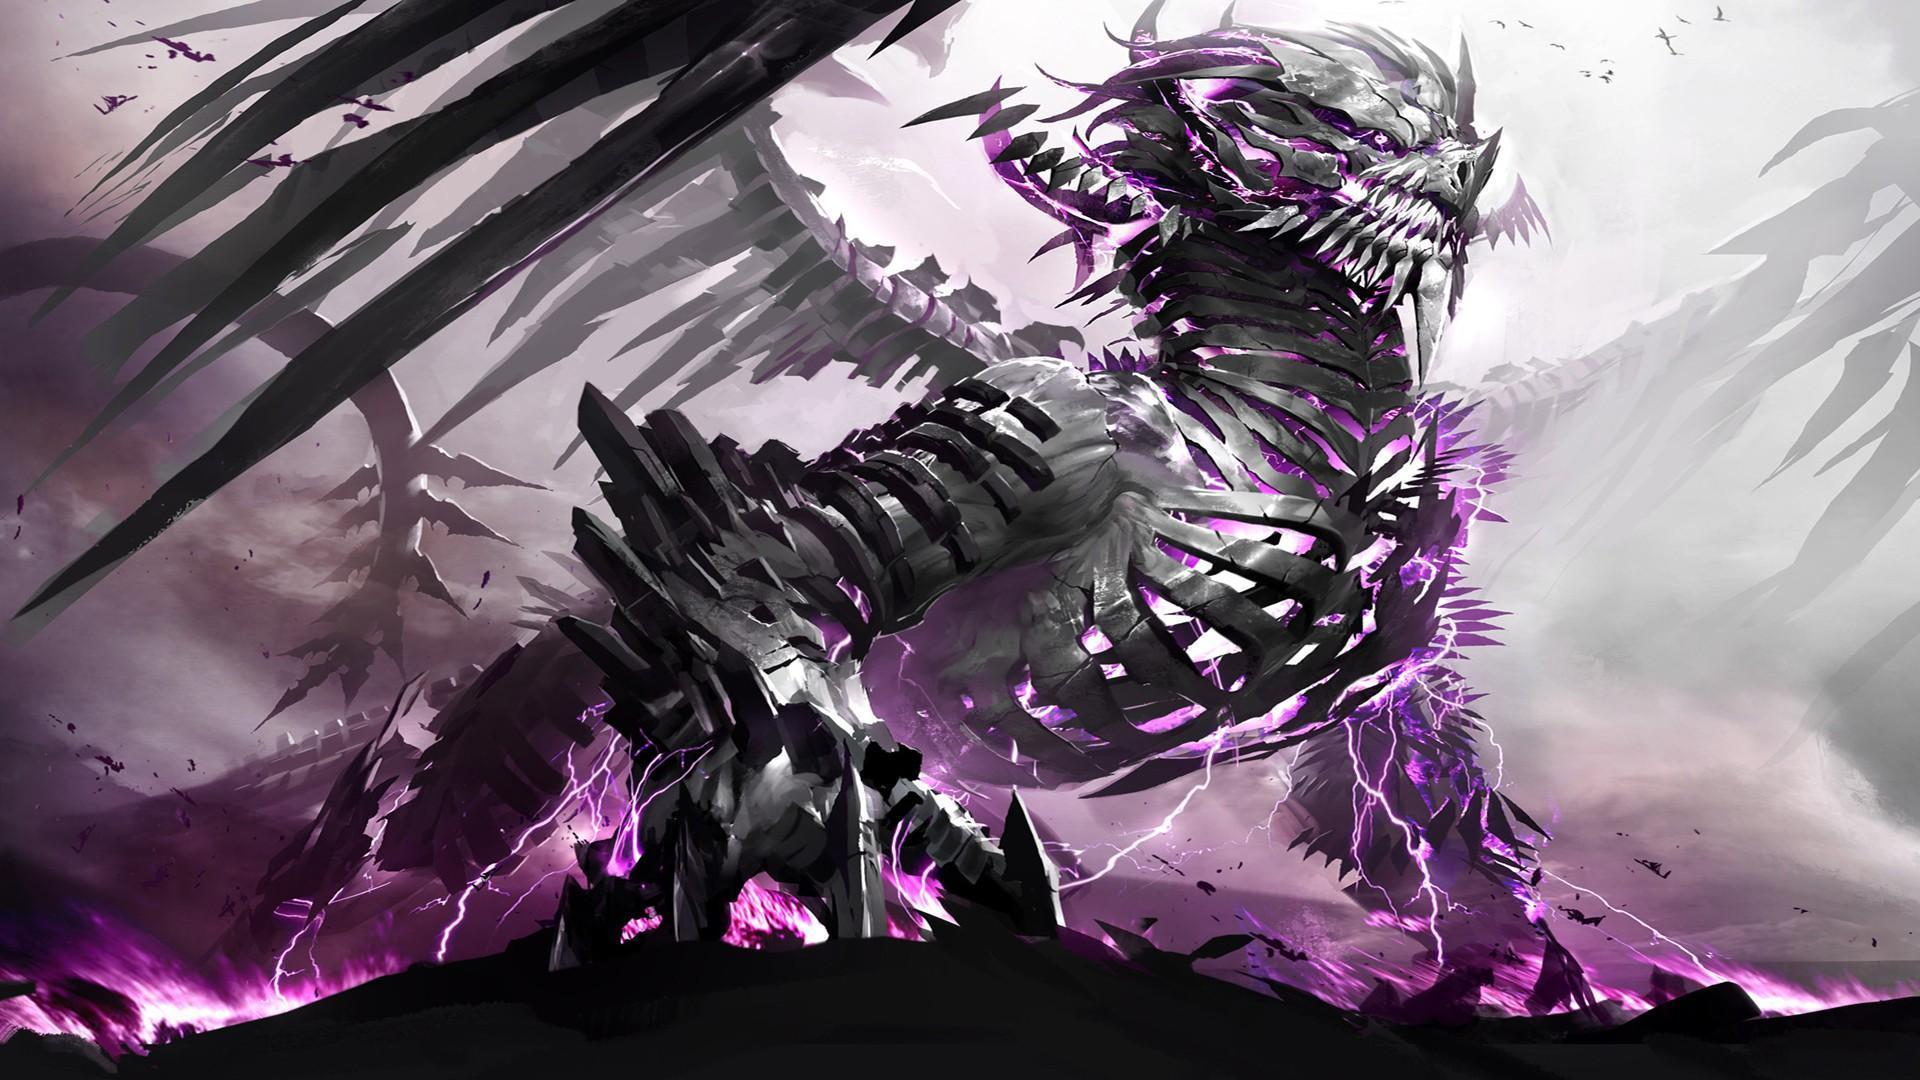 Image For > Epic Dragon Wallpapers 1920x1080